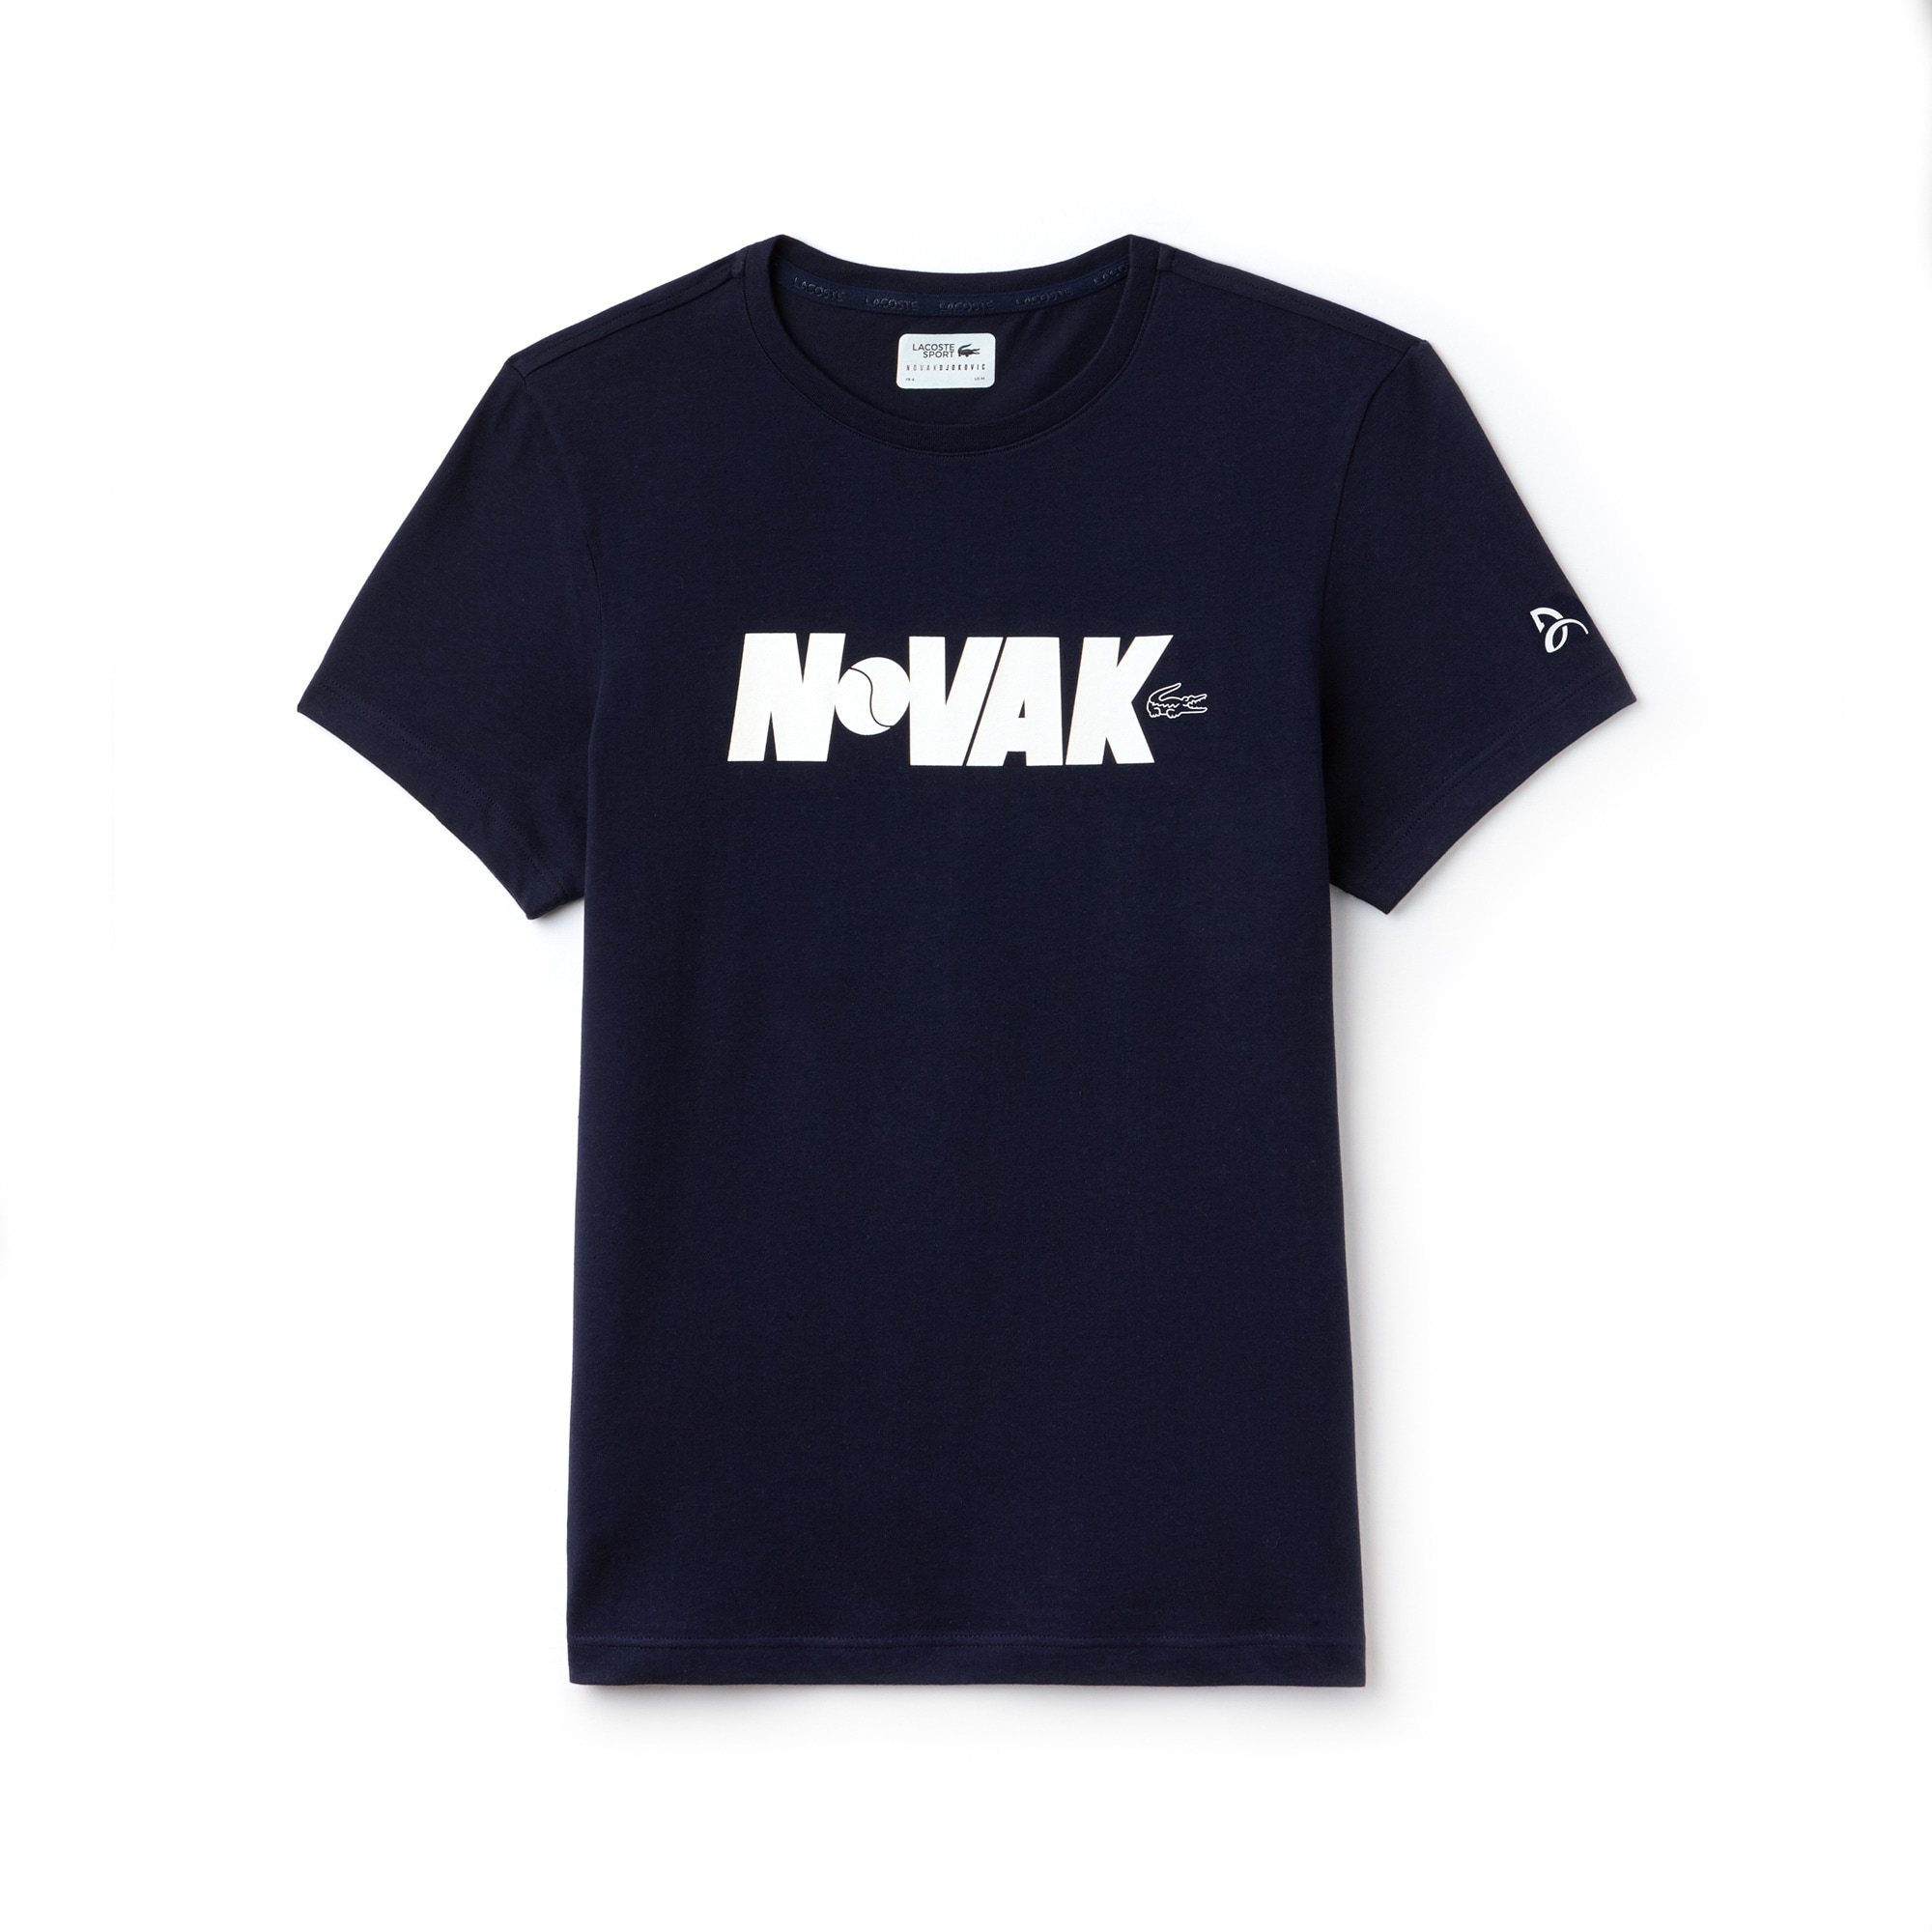 T-shirt girocollo Lacoste SPORT COLLEZIONE NOVAK DJOKOVIC SUPPORT WITH STYLE in jersey tecnico